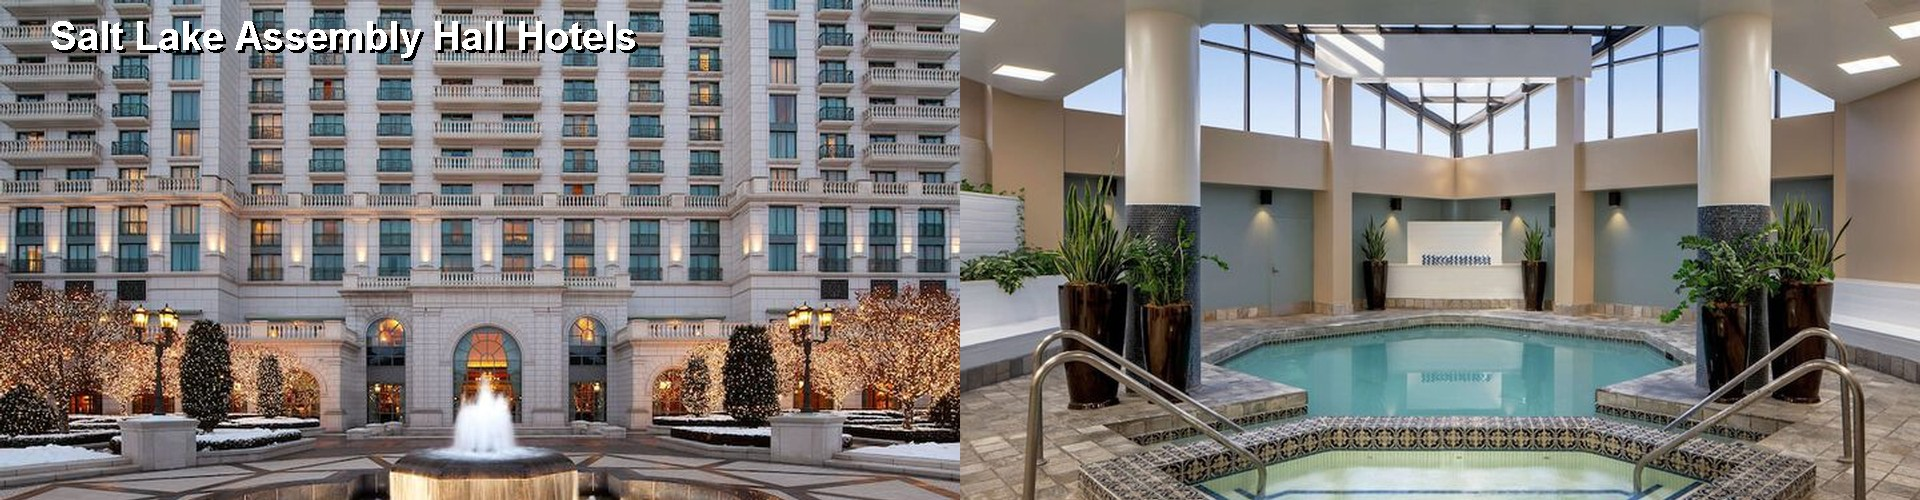 5 Best Hotels near Salt Lake Assembly Hall